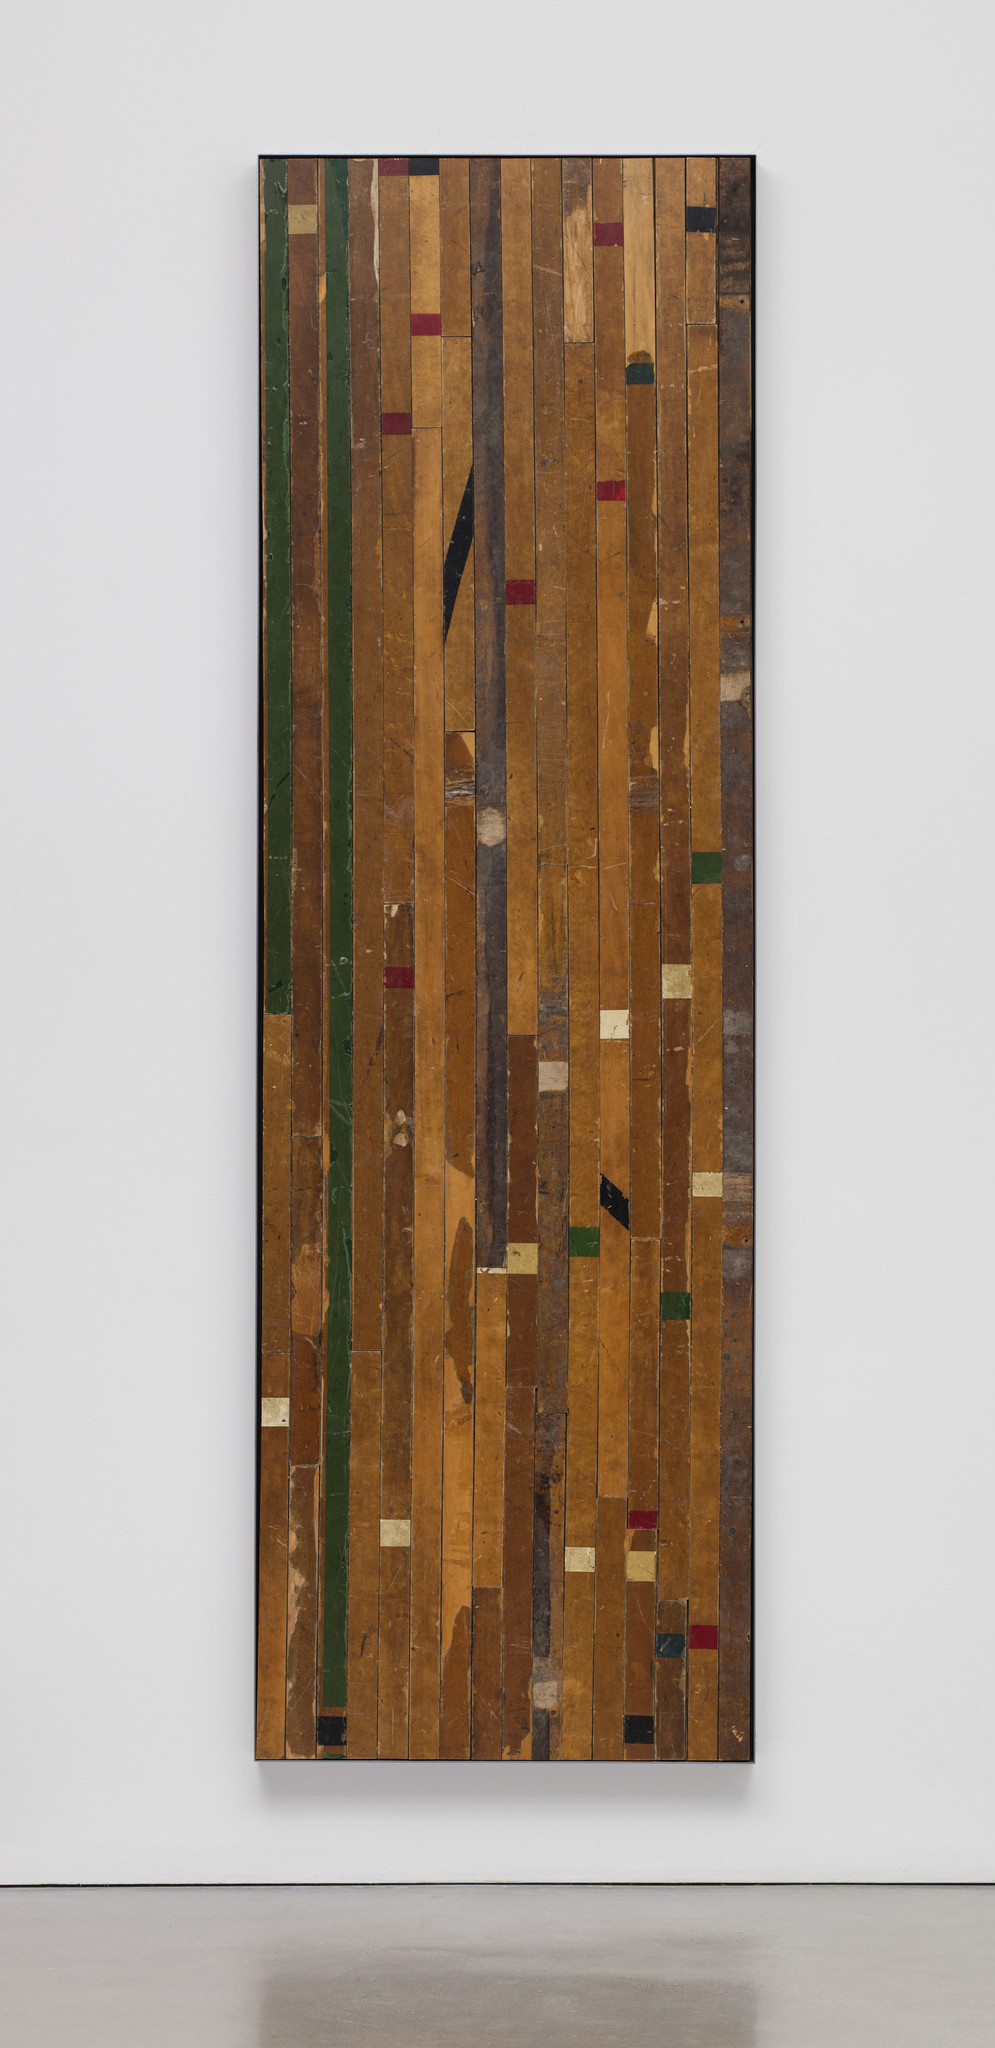 """Theaster Gates' """"Ground rules. Green scrimmage 2,"""" 2015, wooden flooring, framed dimensions 120 1/4 inches by 37 3/8 inches by 2 7/8 inches."""